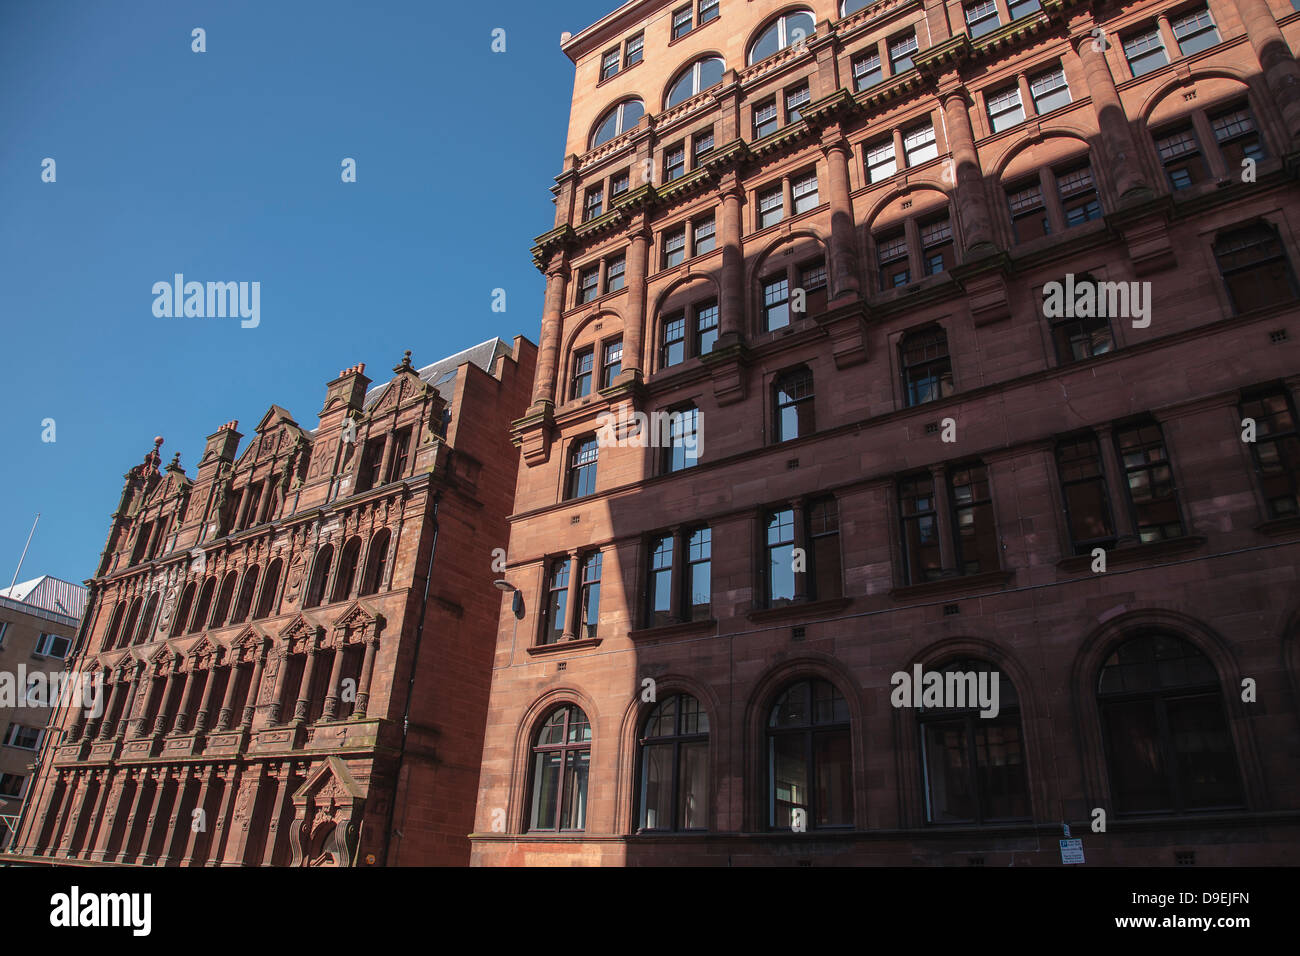 Imposing sandstone office building in Glasgow city centre - Stock Image